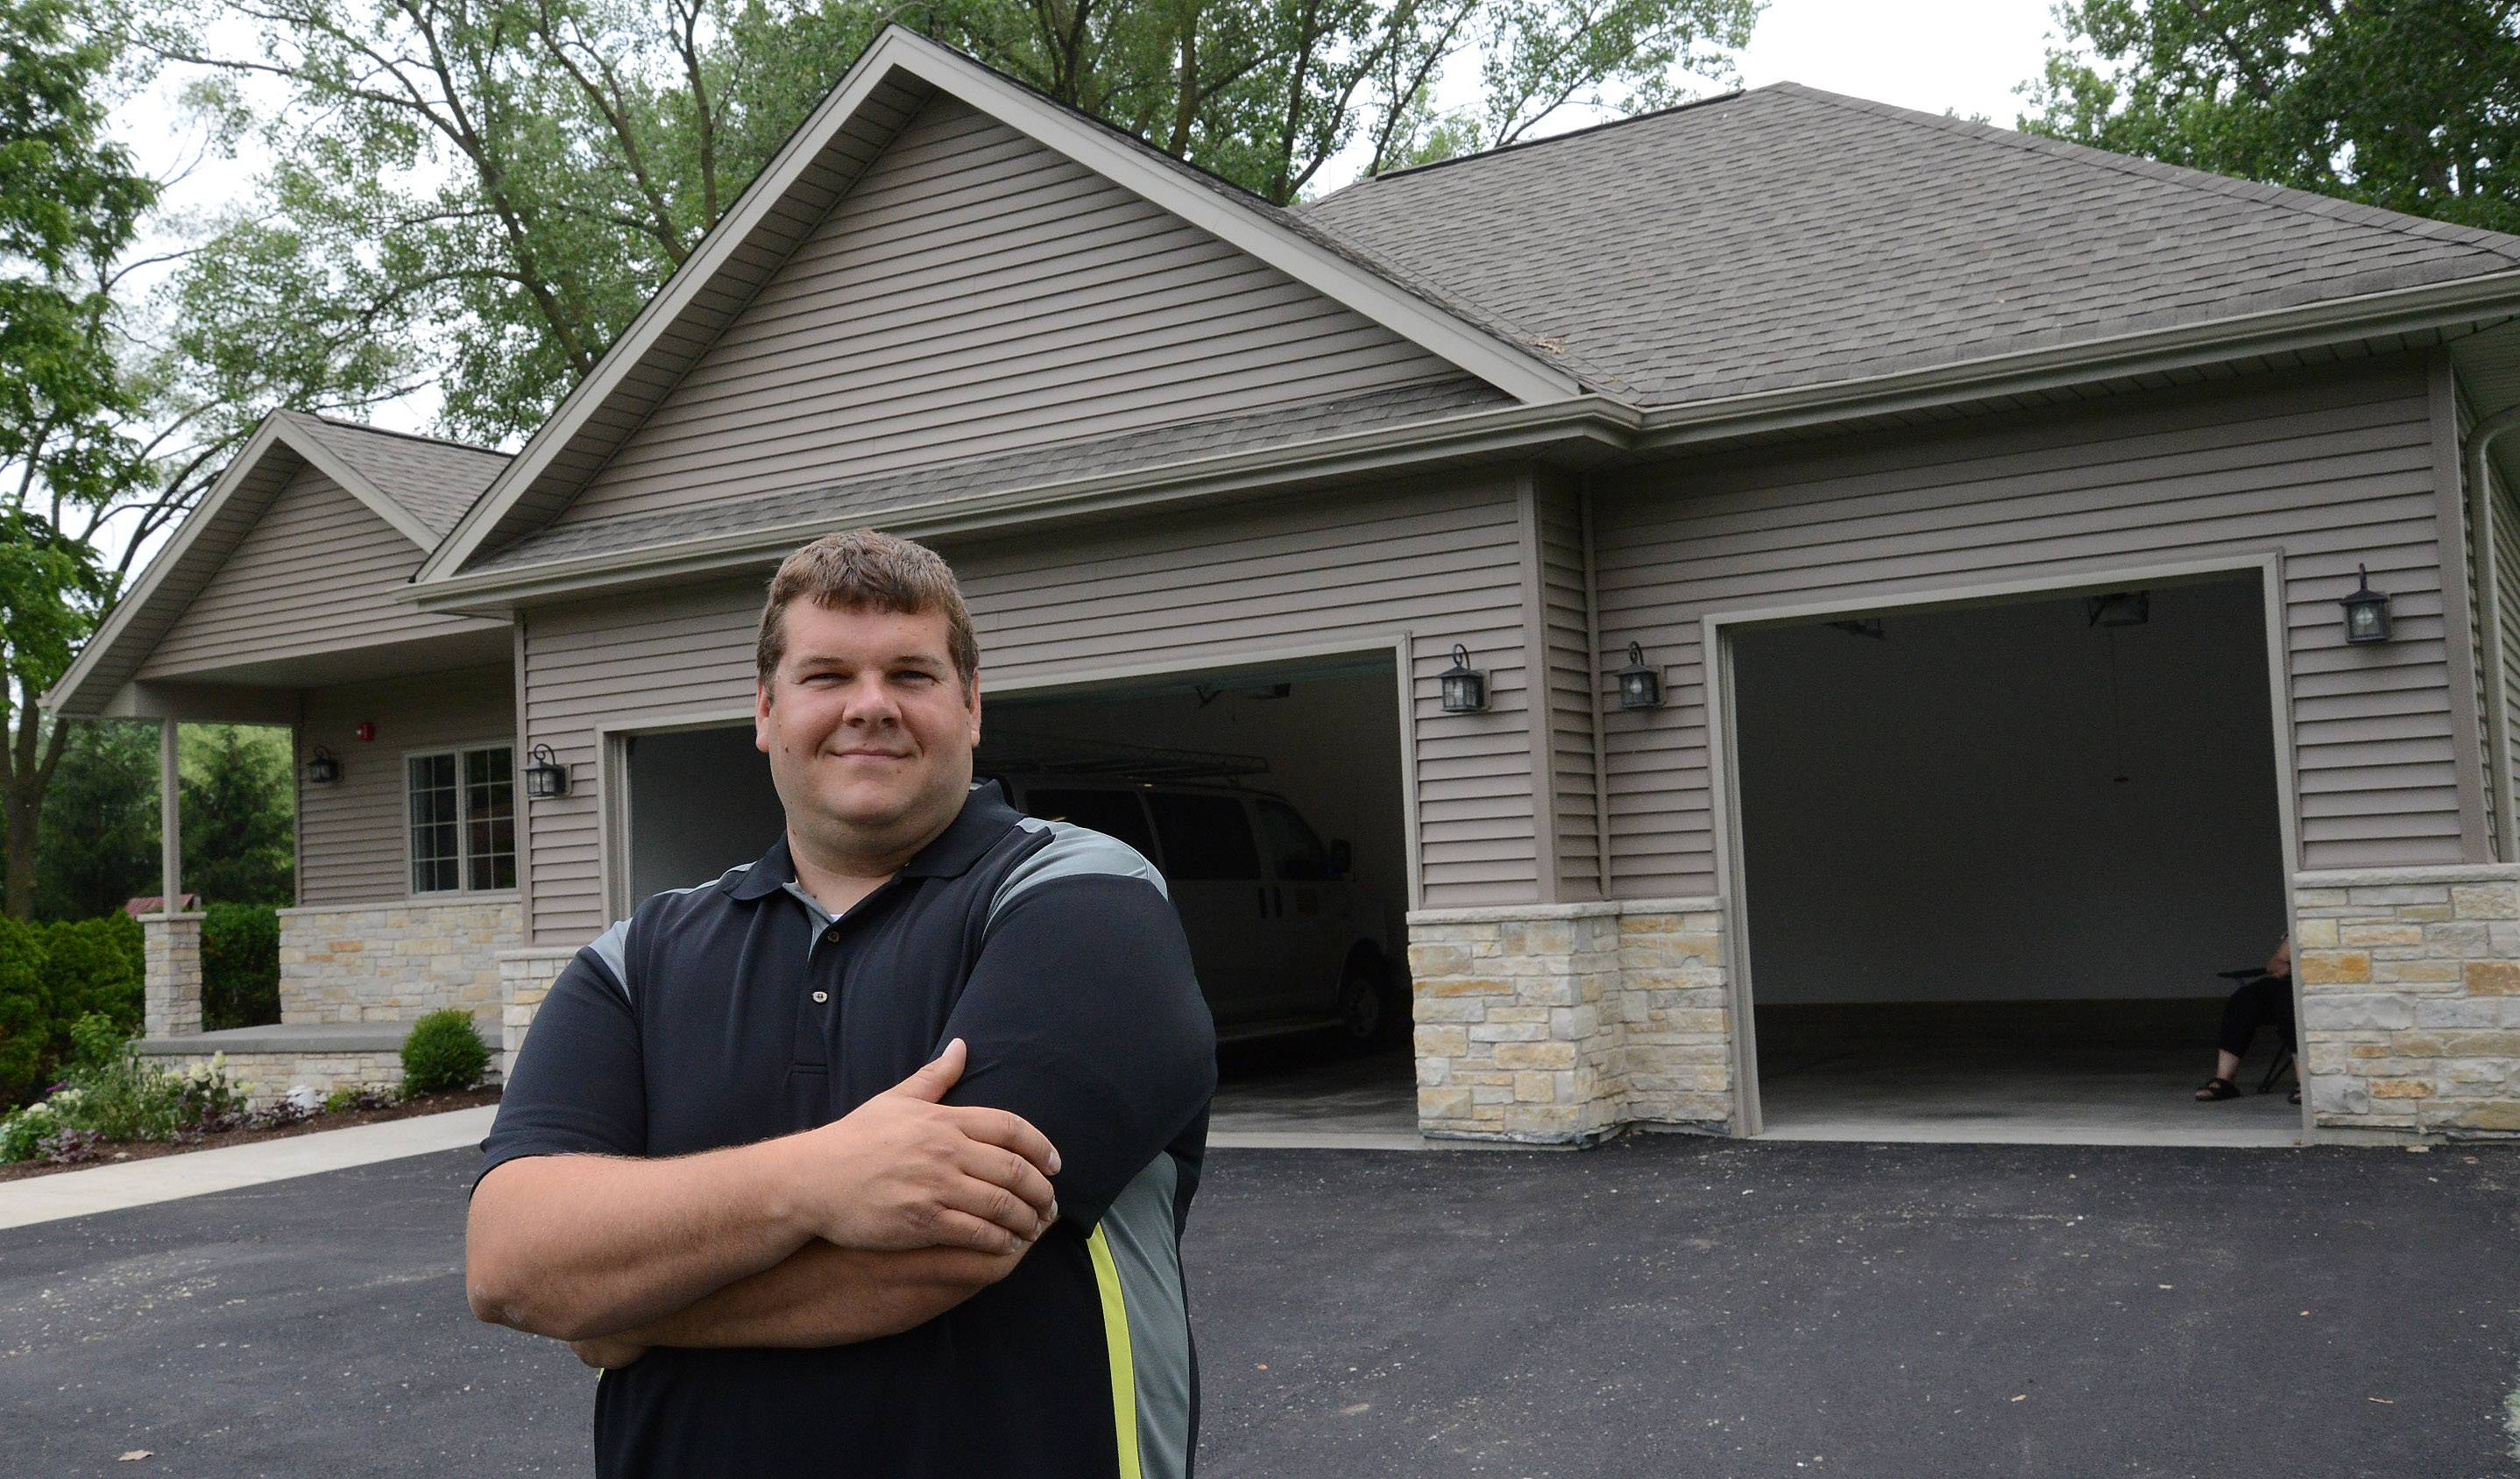 Marc Sears, PAC instructor for District 214, stands in front of the four-bedroom, 2½-bath Prospect Heights home students recently completed. The house is expected to go on the market in July.